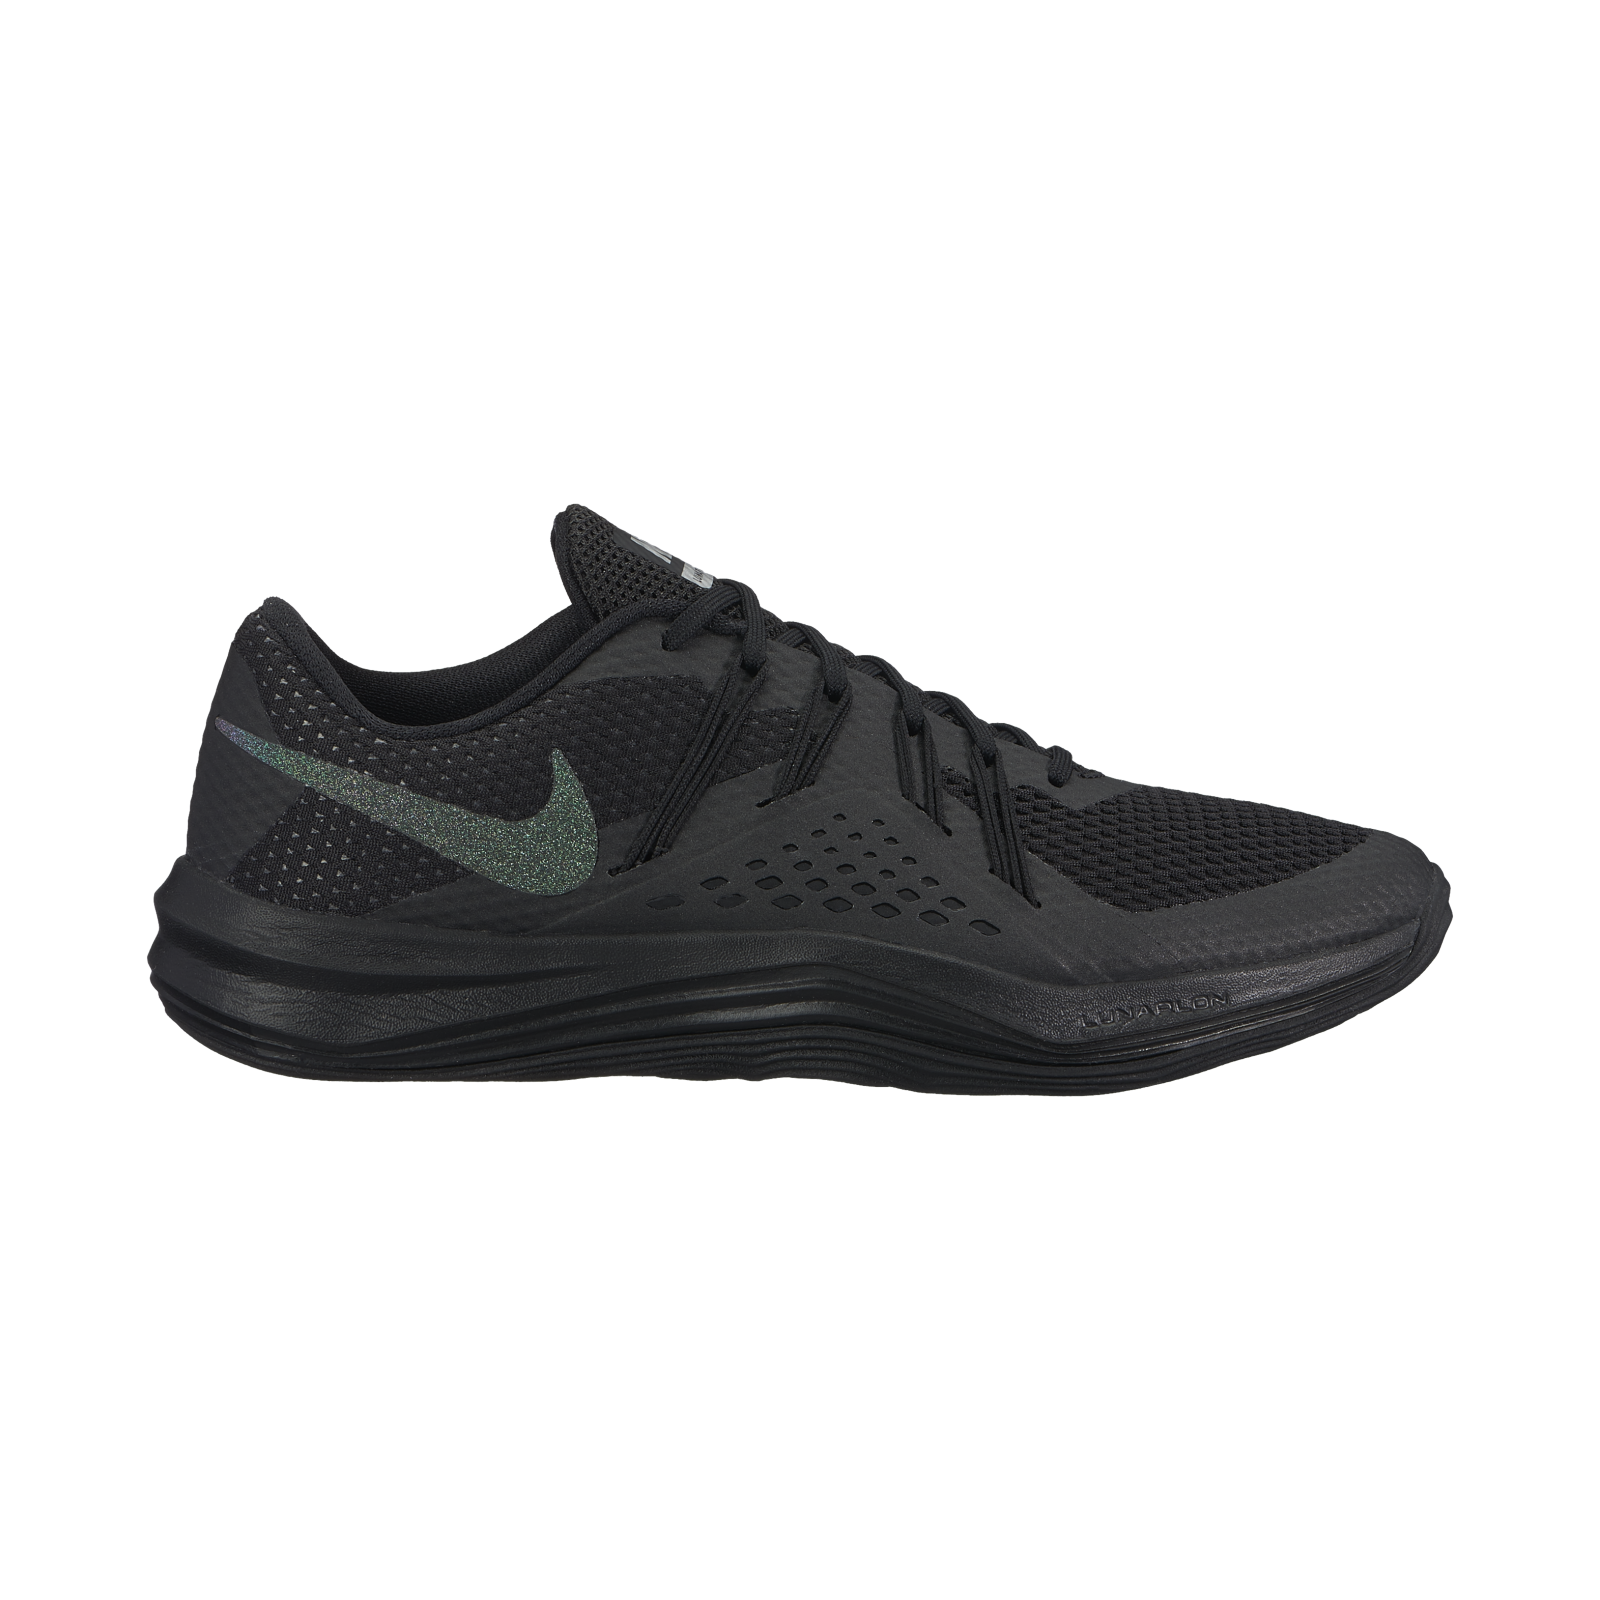 Ladies Nike Volleyball Shoes